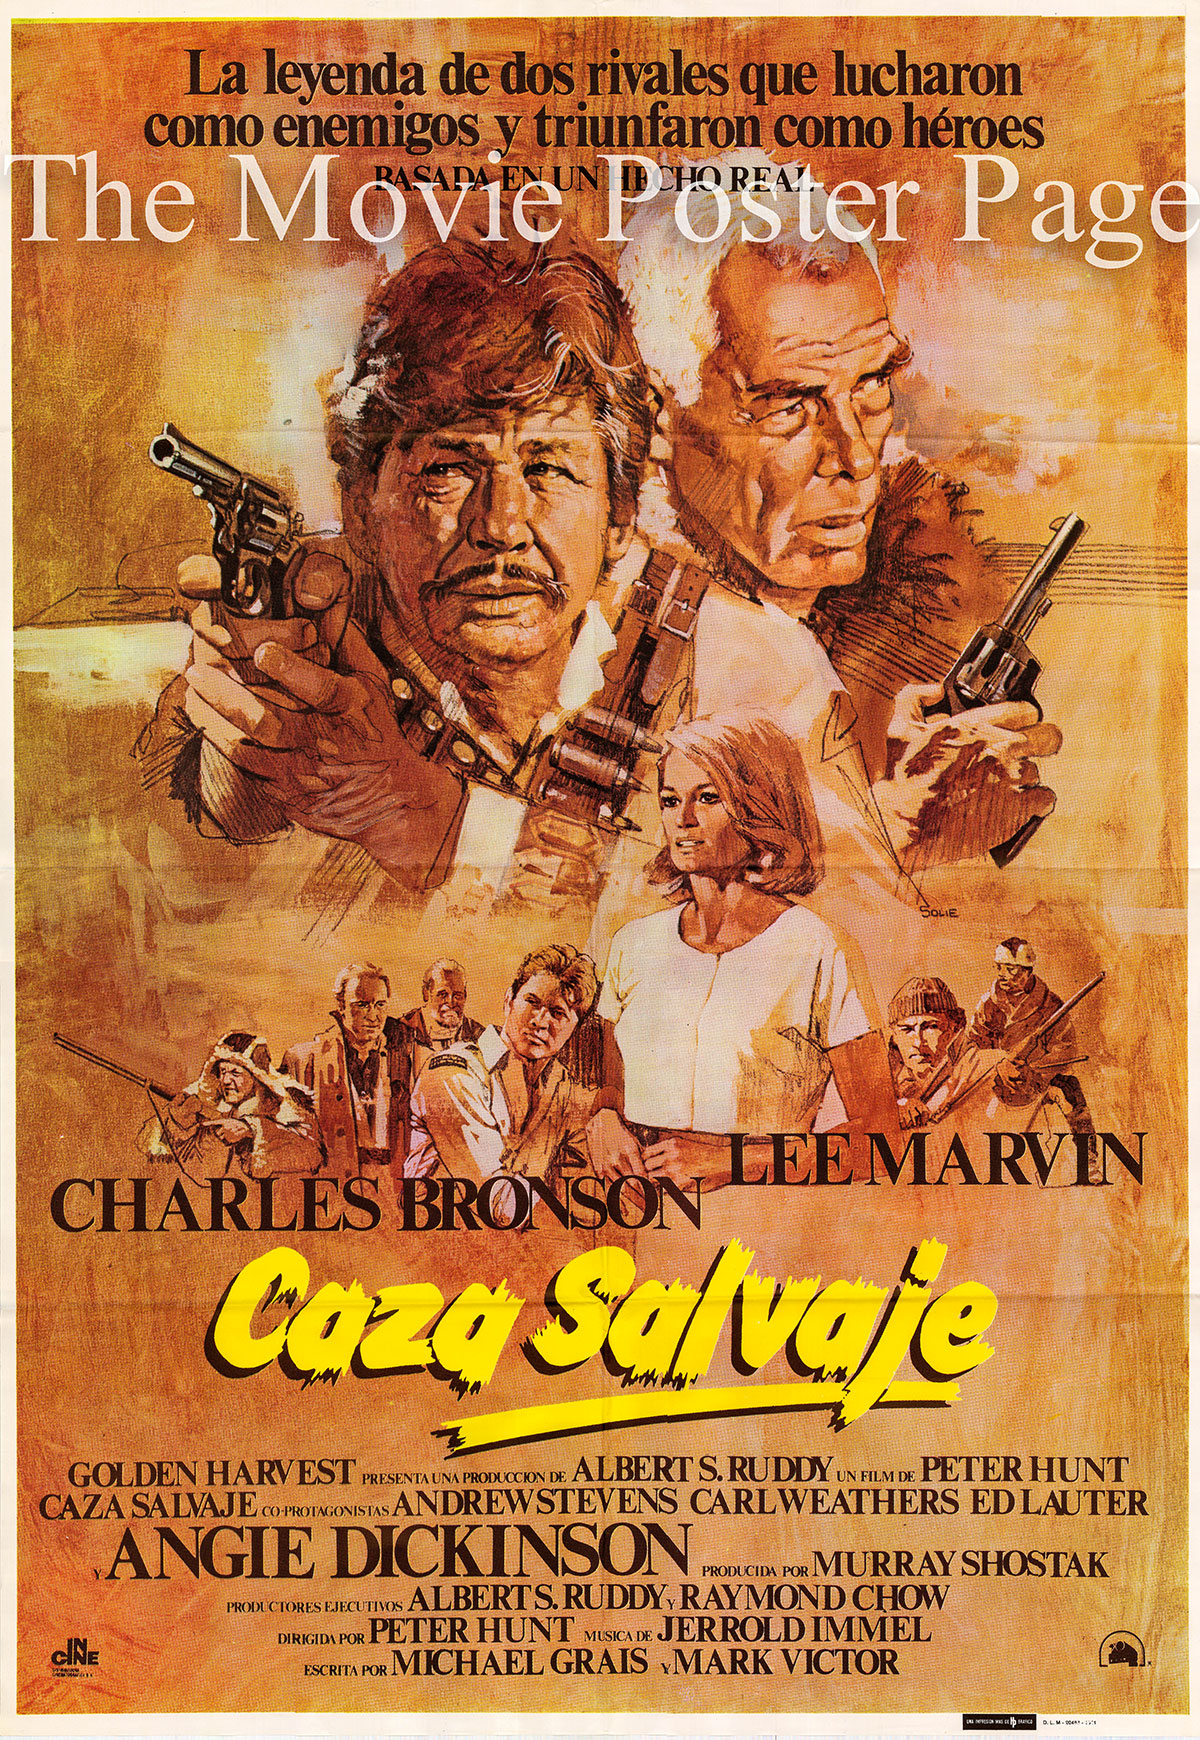 Pictured is a Spanish one-sheet poster for the 1981 Peter R. Hunt film Death Hunt starring Charles Bronson as Albert Johnson.